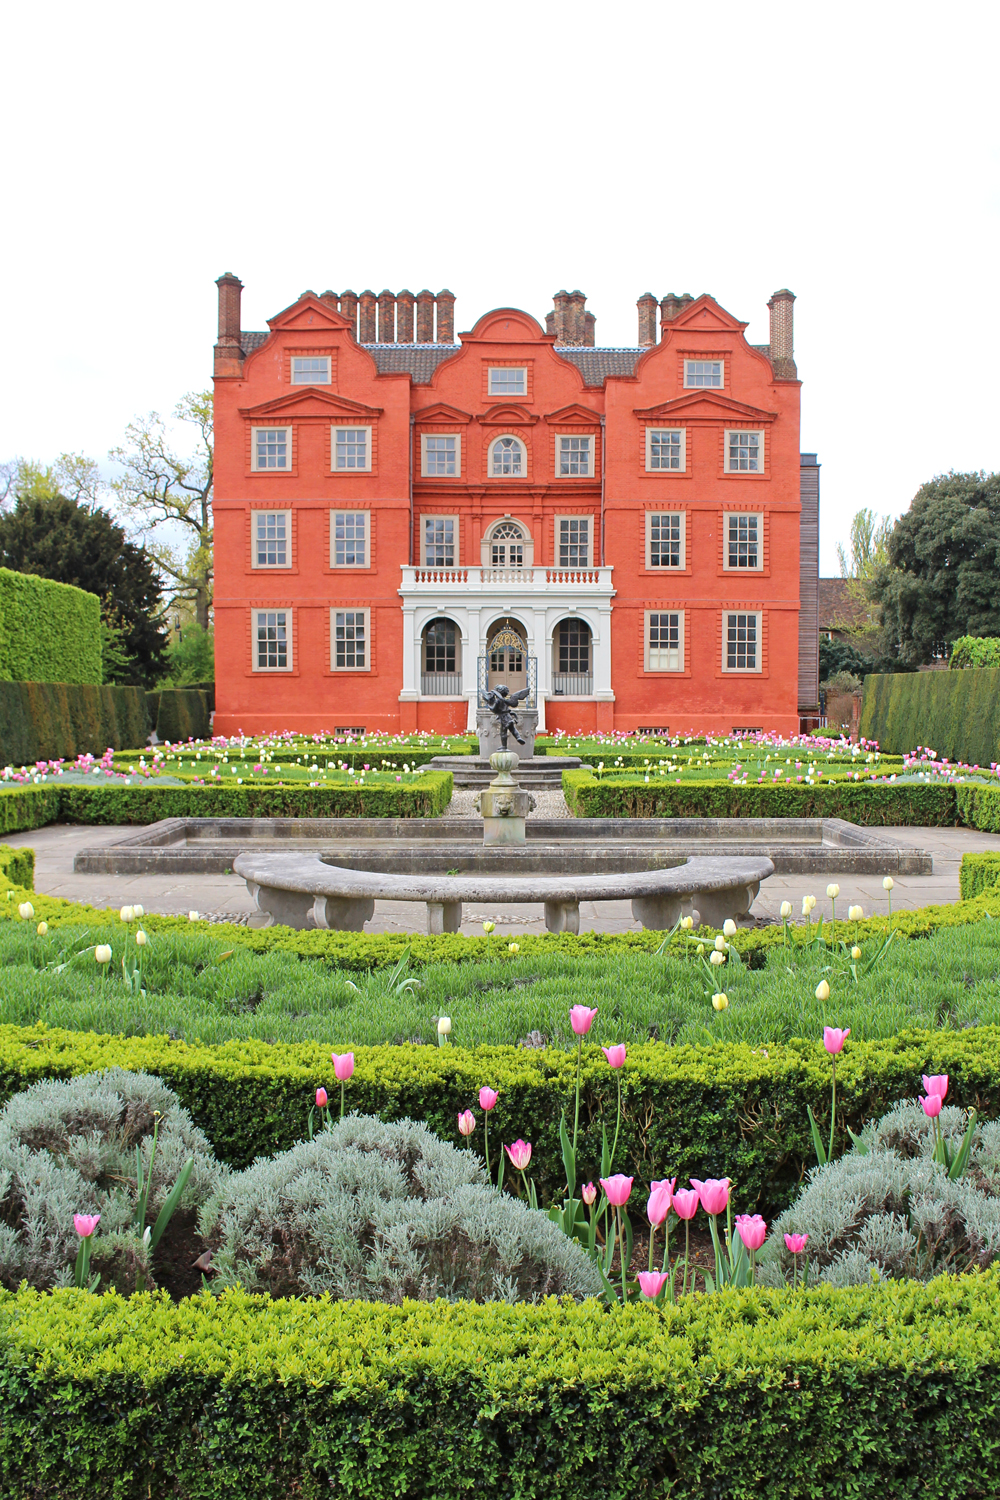 Kew Palace at Kew Gardens in Spring - London lifestyle blog